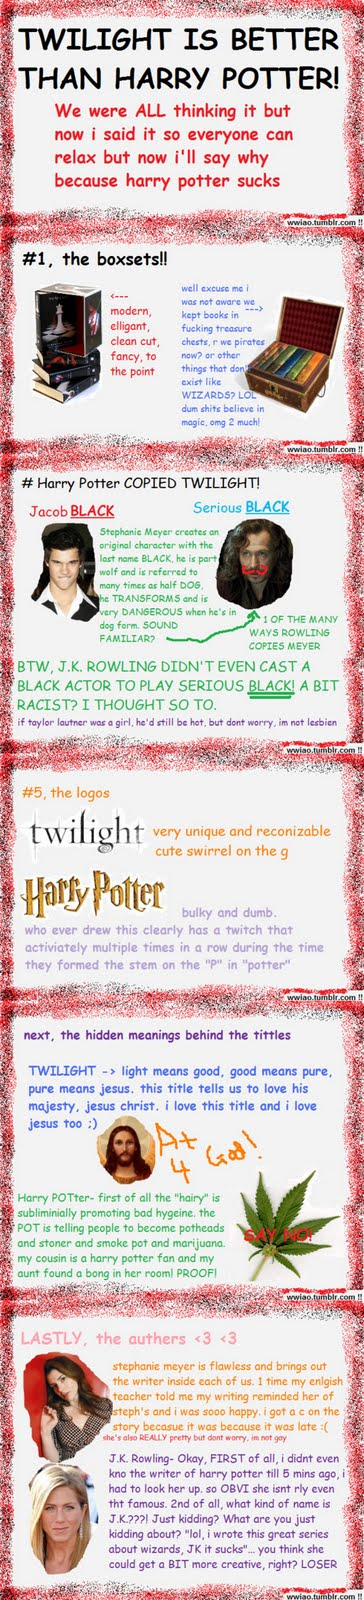 twillight vs harry potter